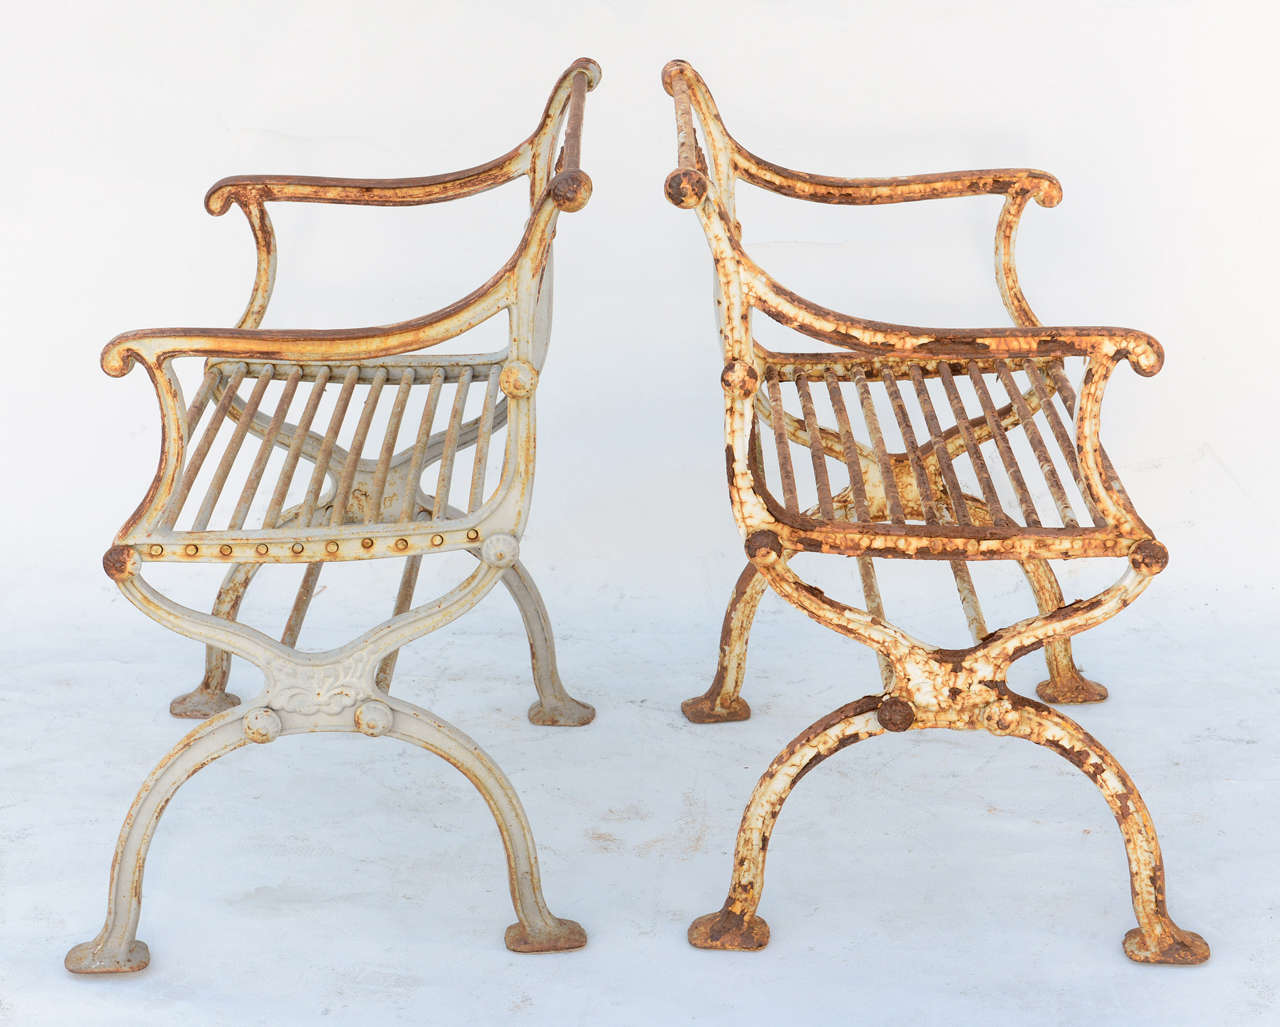 Pair of 19th Century Iron Garden Chairs by Karl Friedrich Schinkel For Sale 1